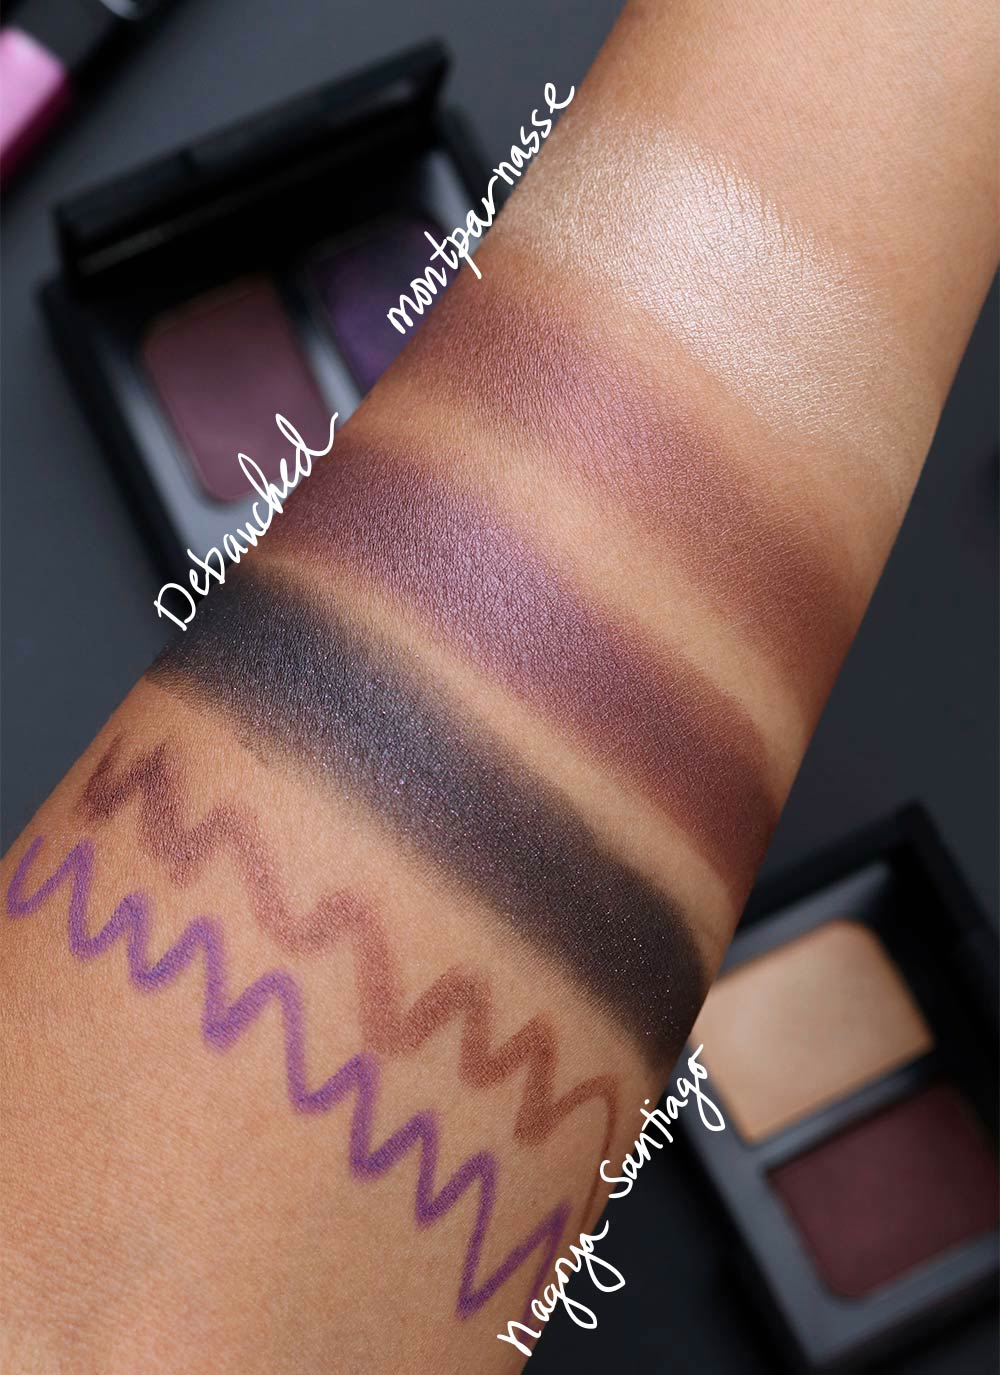 nars man ray for nars swatches debauched montparnasse